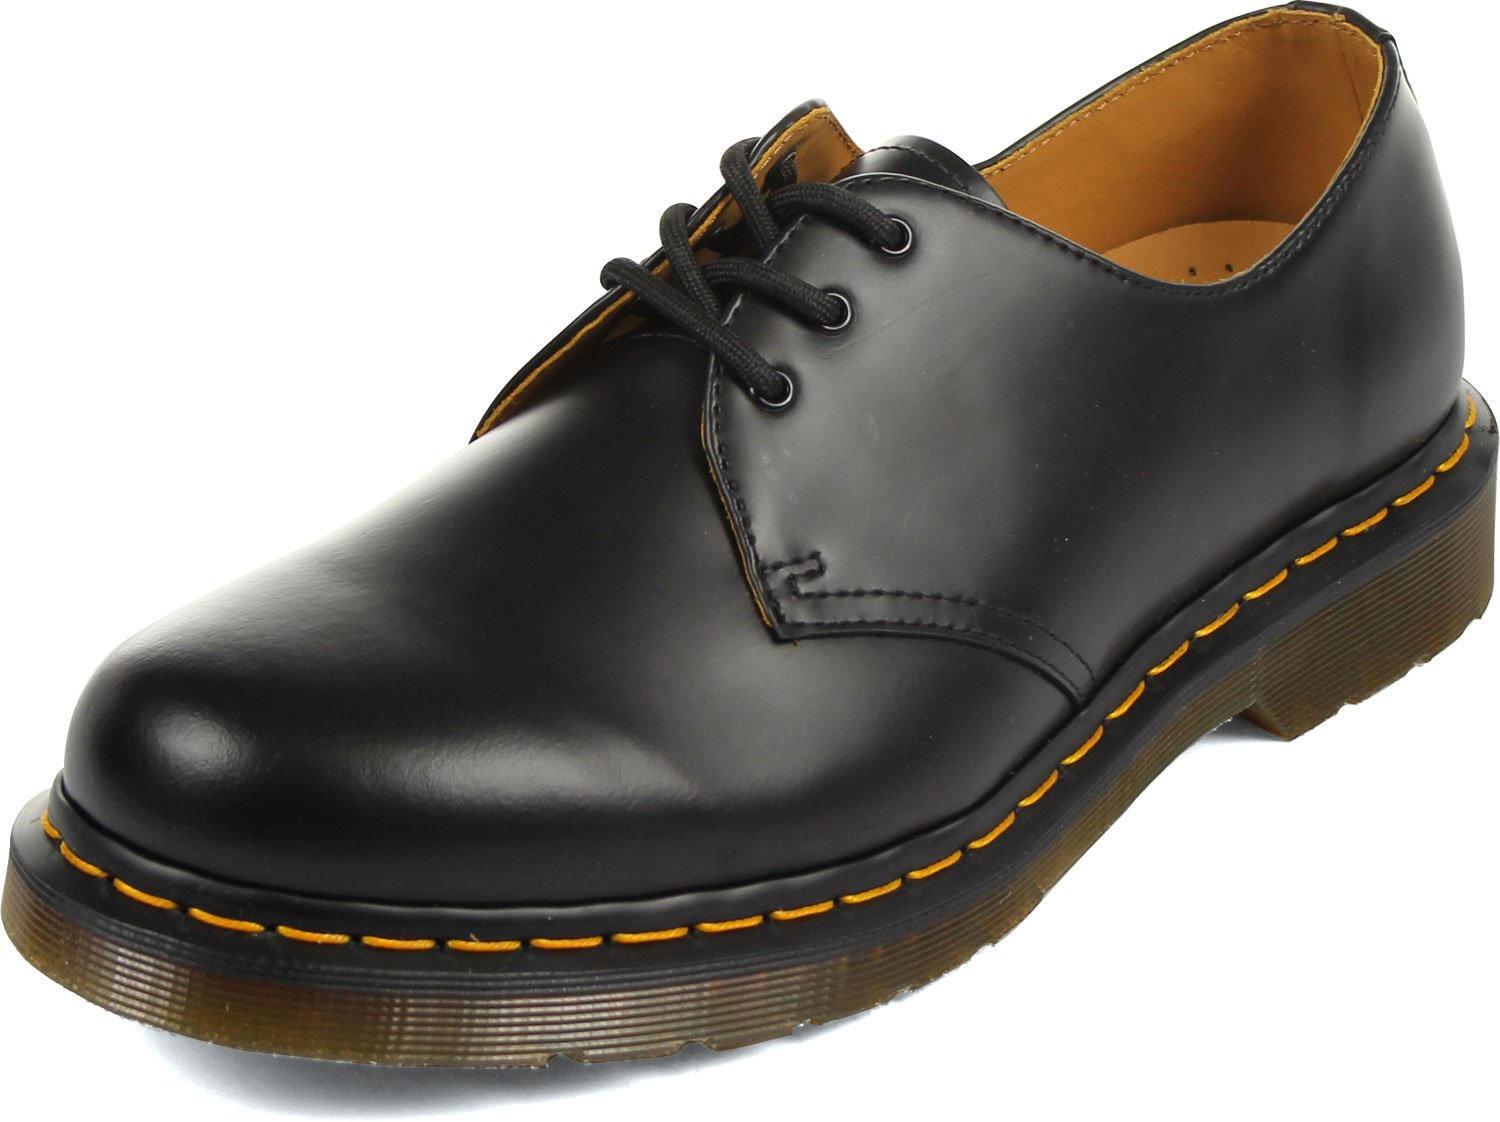 Dr. Martens Unisex Oxford Black smooth 11 D(M) US